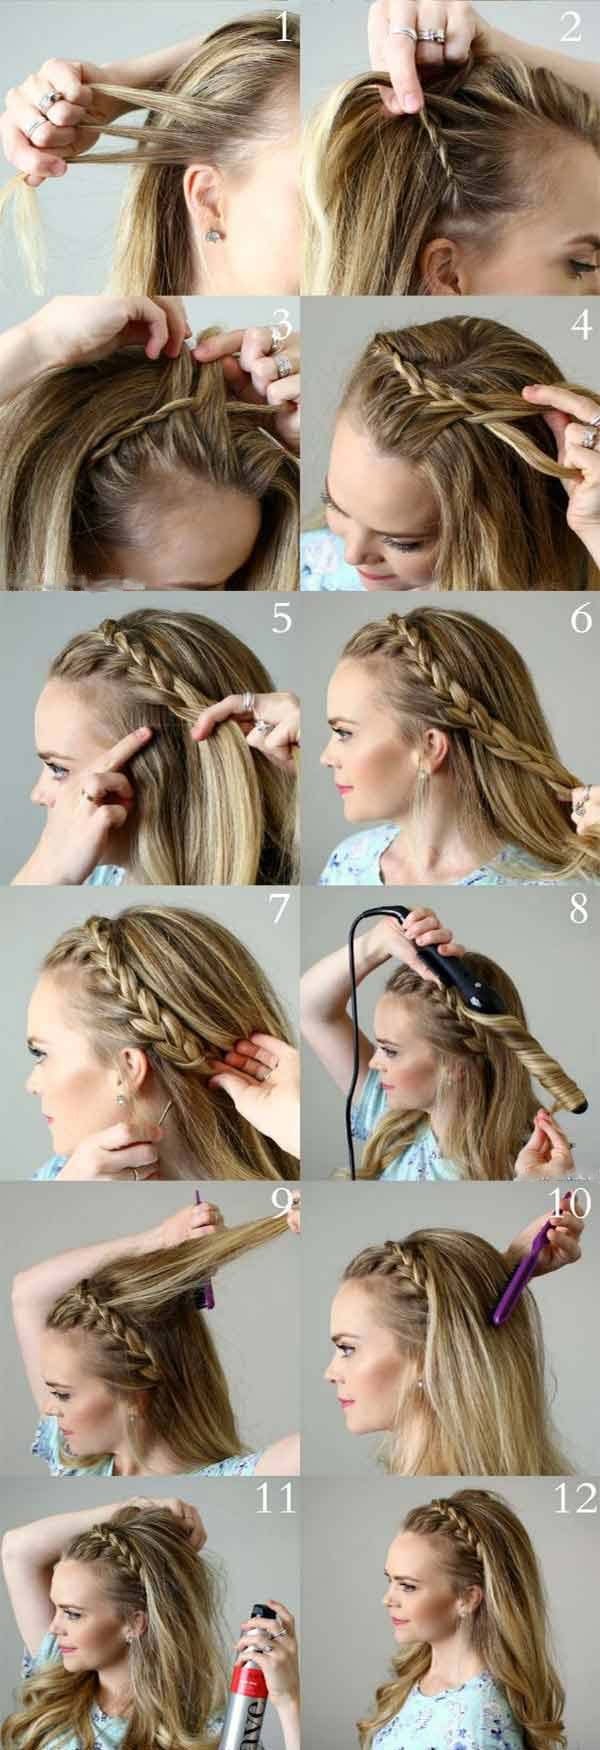 Stylish Hairstyles for Short Hair  Chic hairstyles Stylish